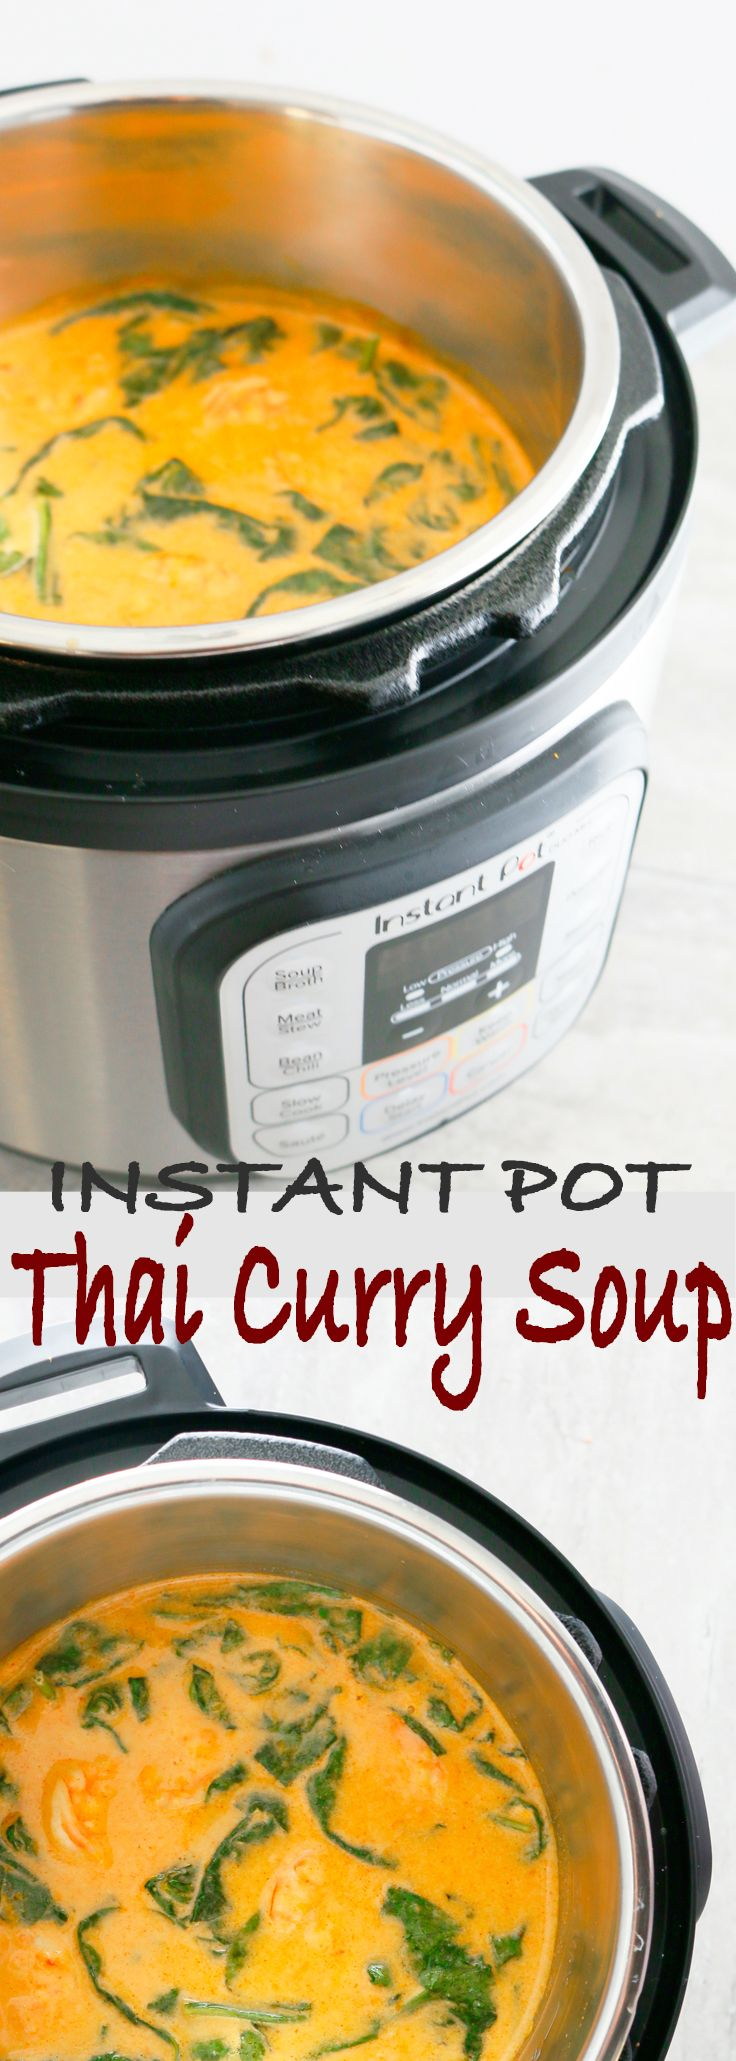 Instant pot soup recipes | instant pot recipes | Thai soup recipes | thai curry soup | easy thai curry soup | thai shrimp soup | easy shrimp soup recipes | shrimp soup recipes |sweet potato soup |